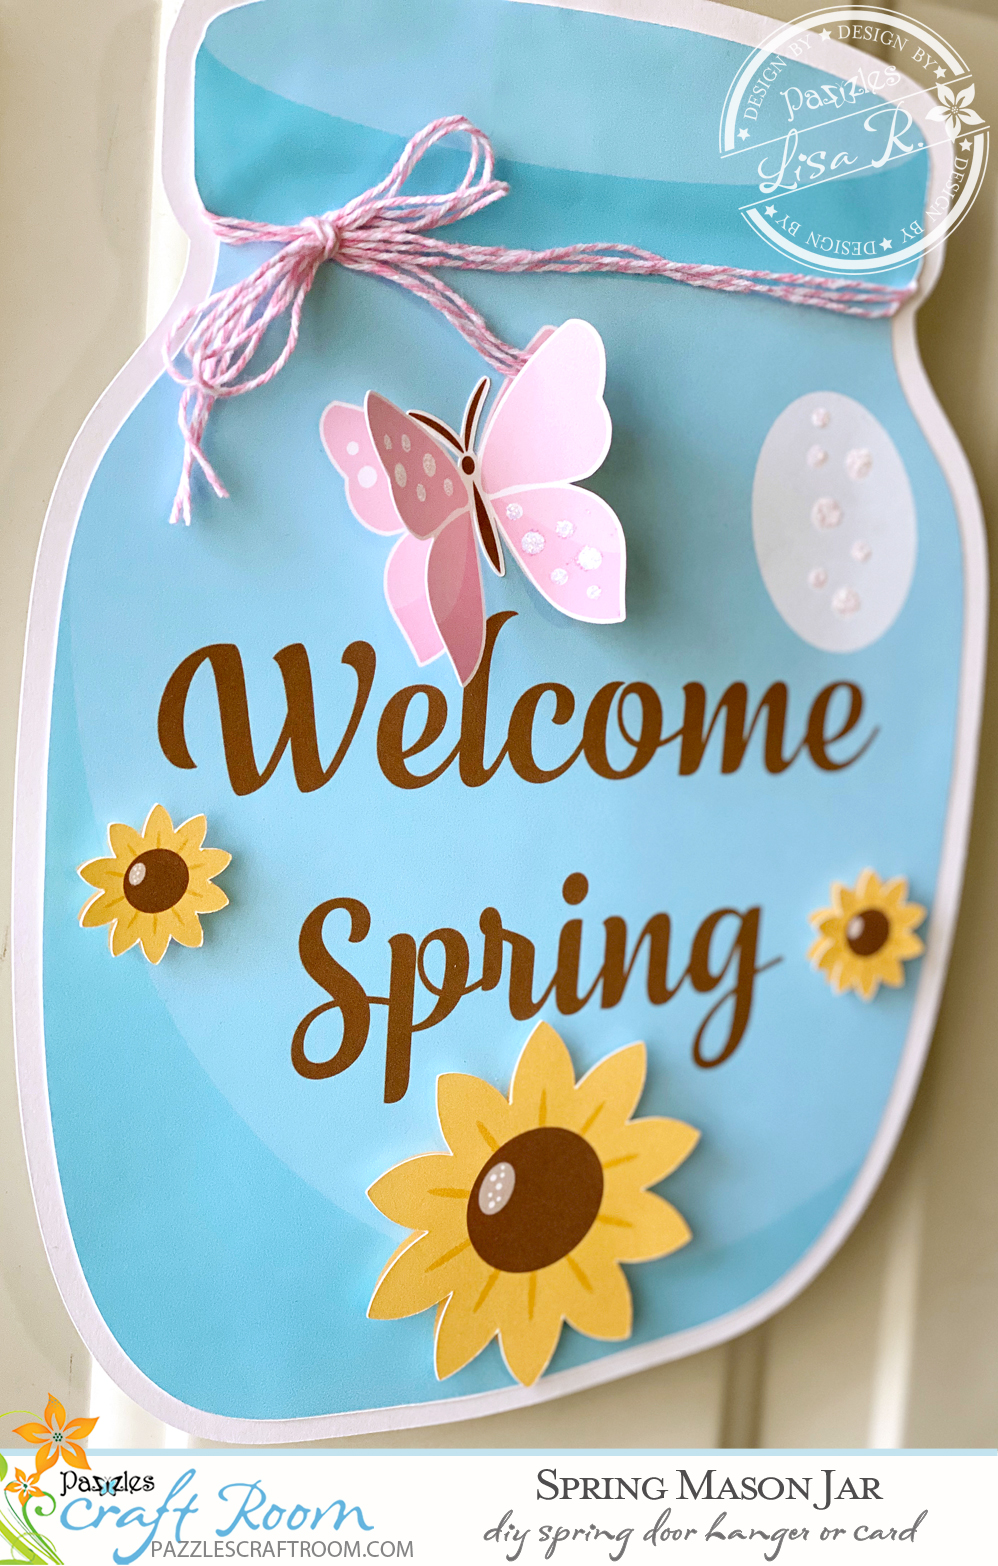 Pazzles DIY Spring Mason Jar Card or Door Hanger with SVG download. Compatible with all major electronic cutters including Pazzles Inspiration, Cricut, and Silhouette Cameo. Design by Lisa Reyna.